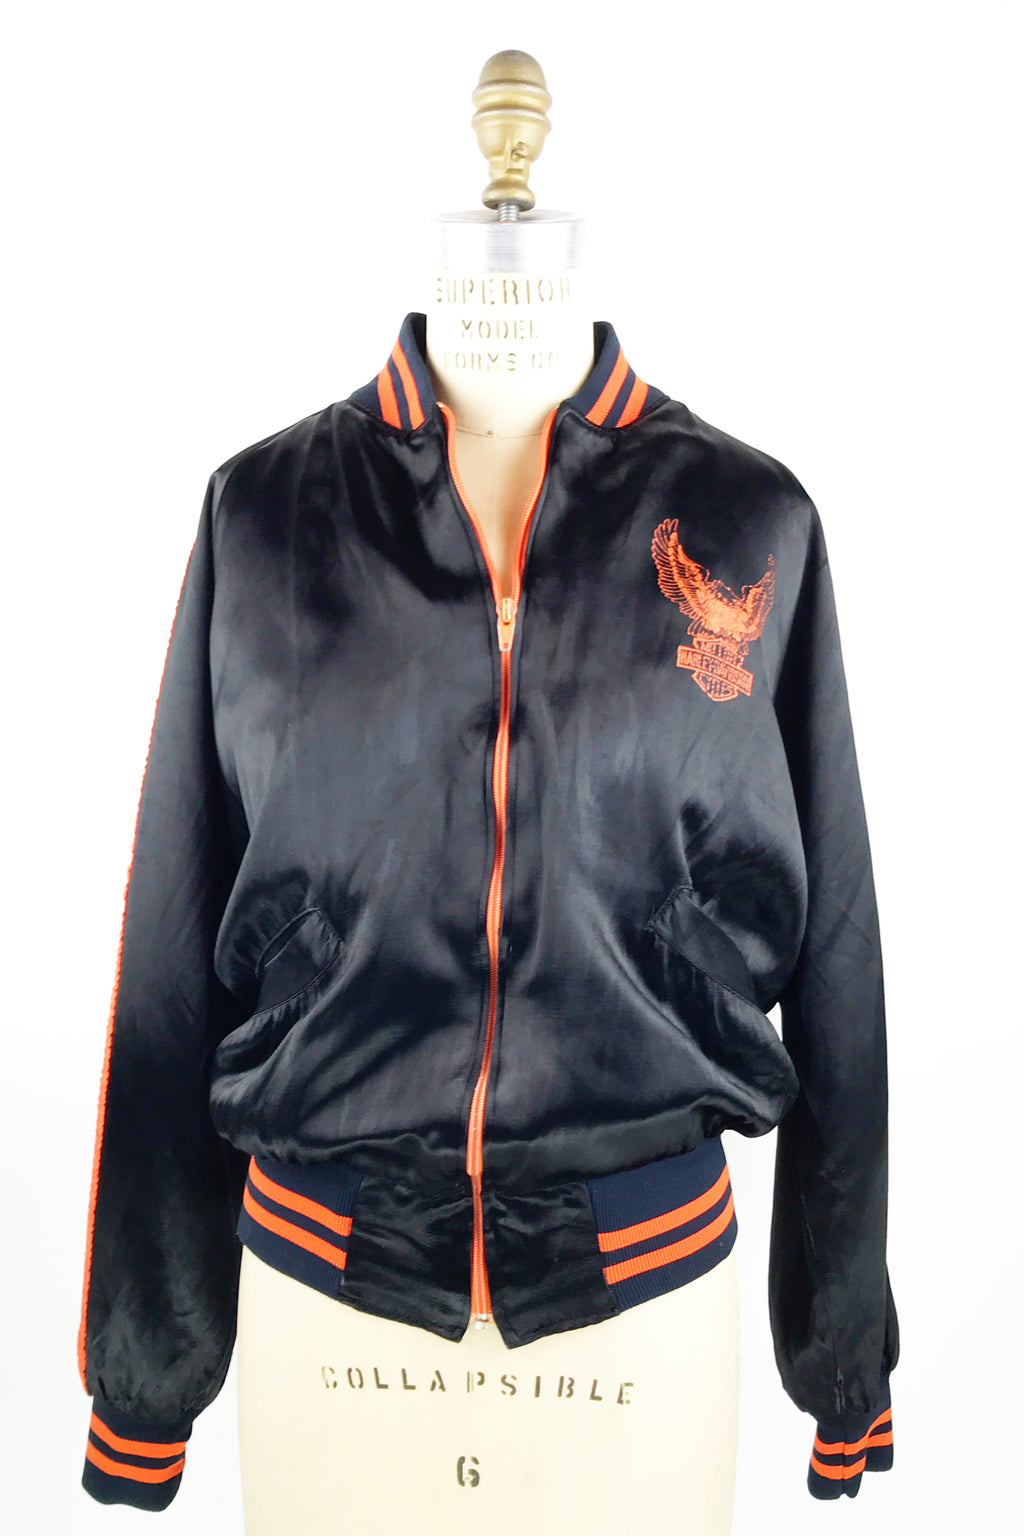 Harley David Satin Jacket